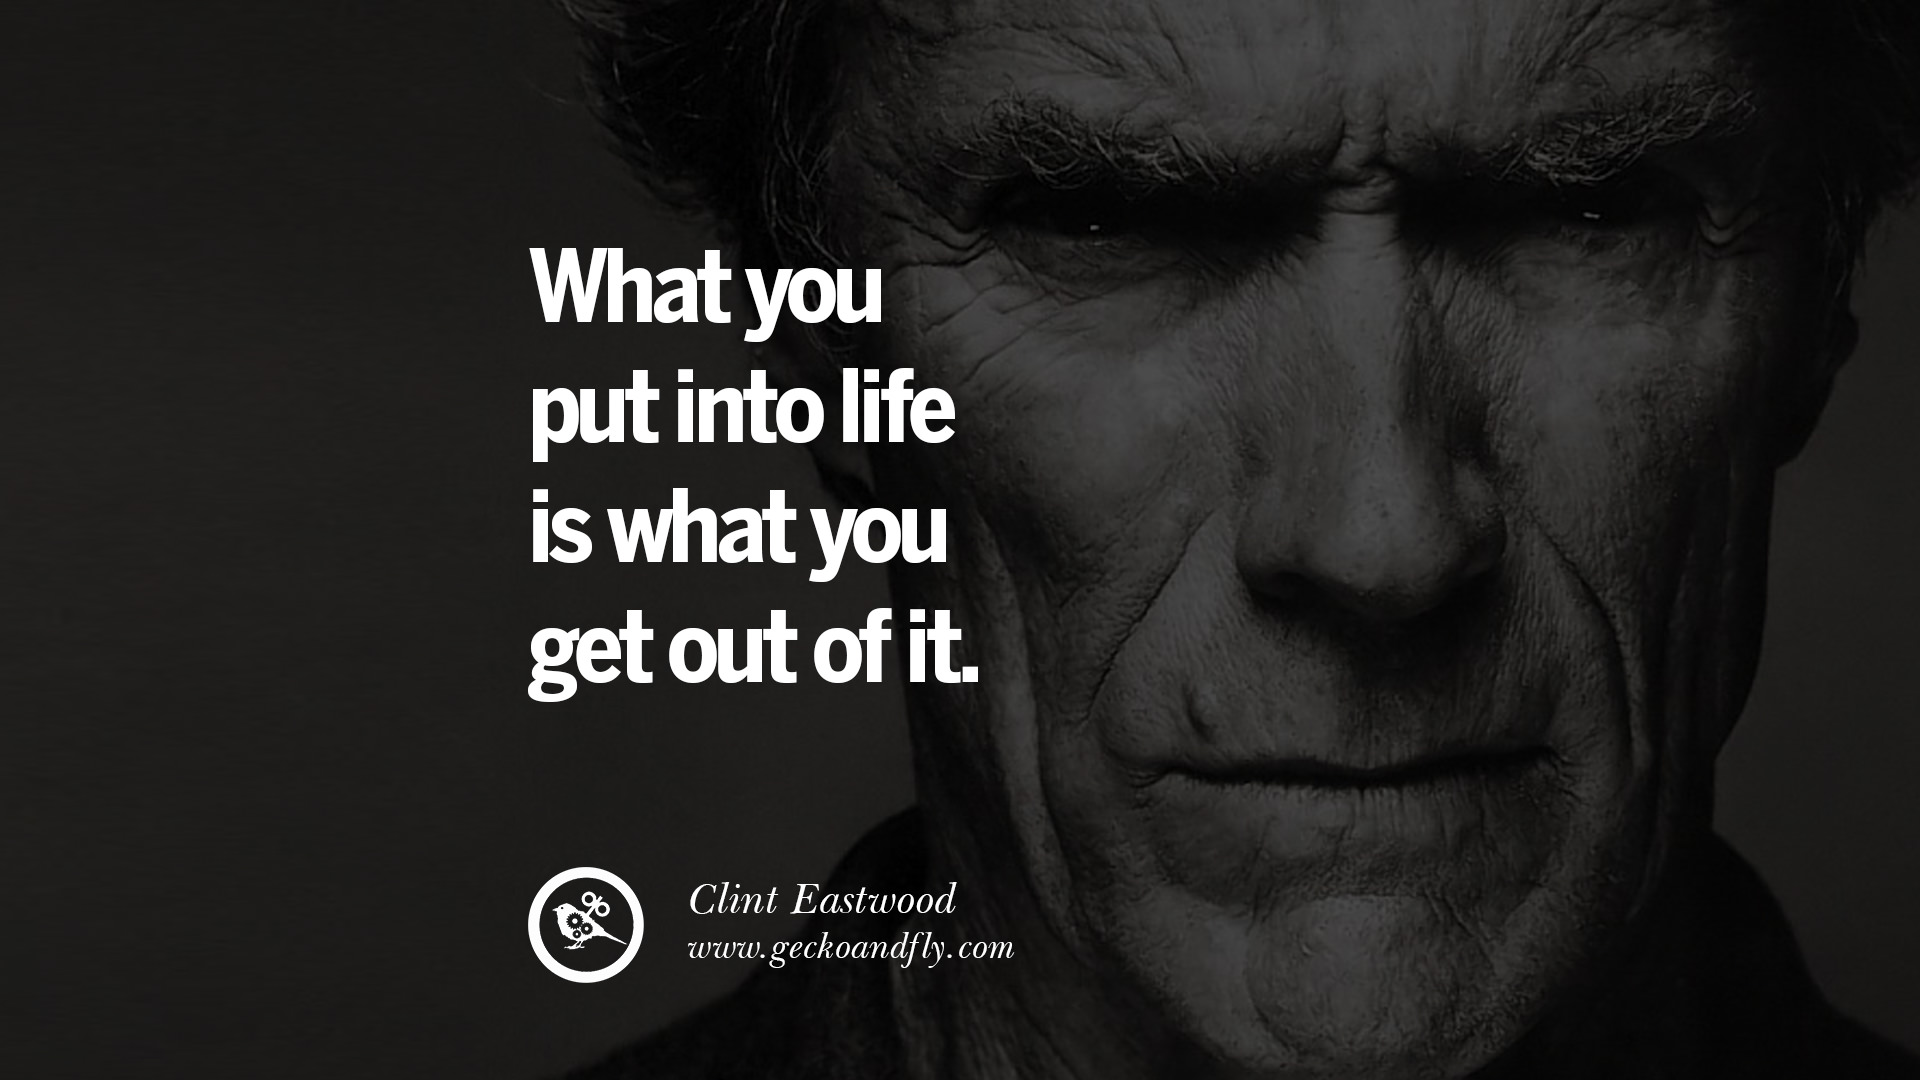 177 Best Political Quotes Images On Pinterest: 24 Inspiring Clint Eastwood Quotes On Politics, Life And Work